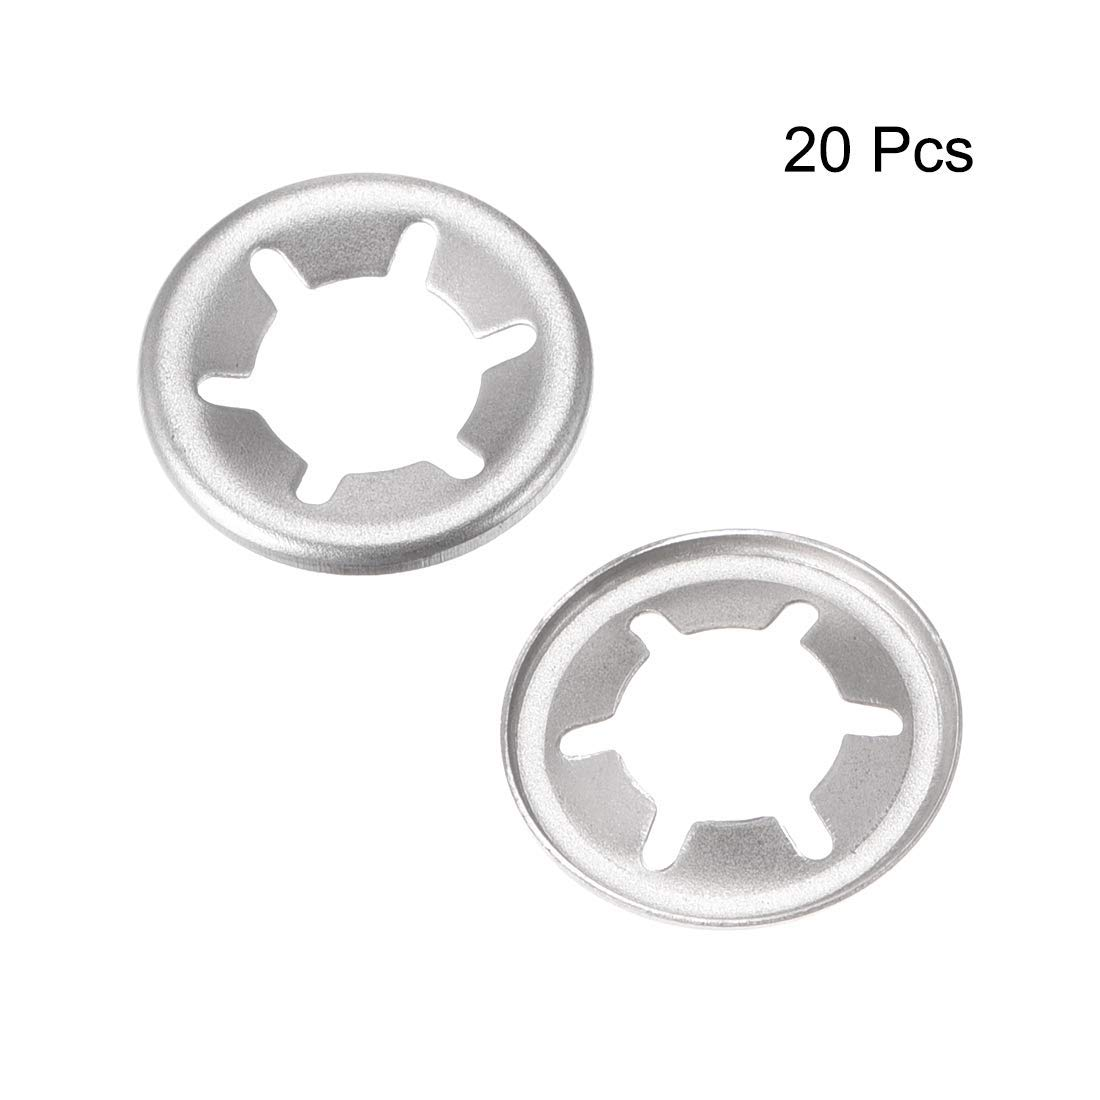 15 mm Outer Diameter Internal Tooth Lock washers Thrust Lock Speed Clip 304 Stainless Steel 20 Pieces M6 Starlock Washer 5.1mm I.D